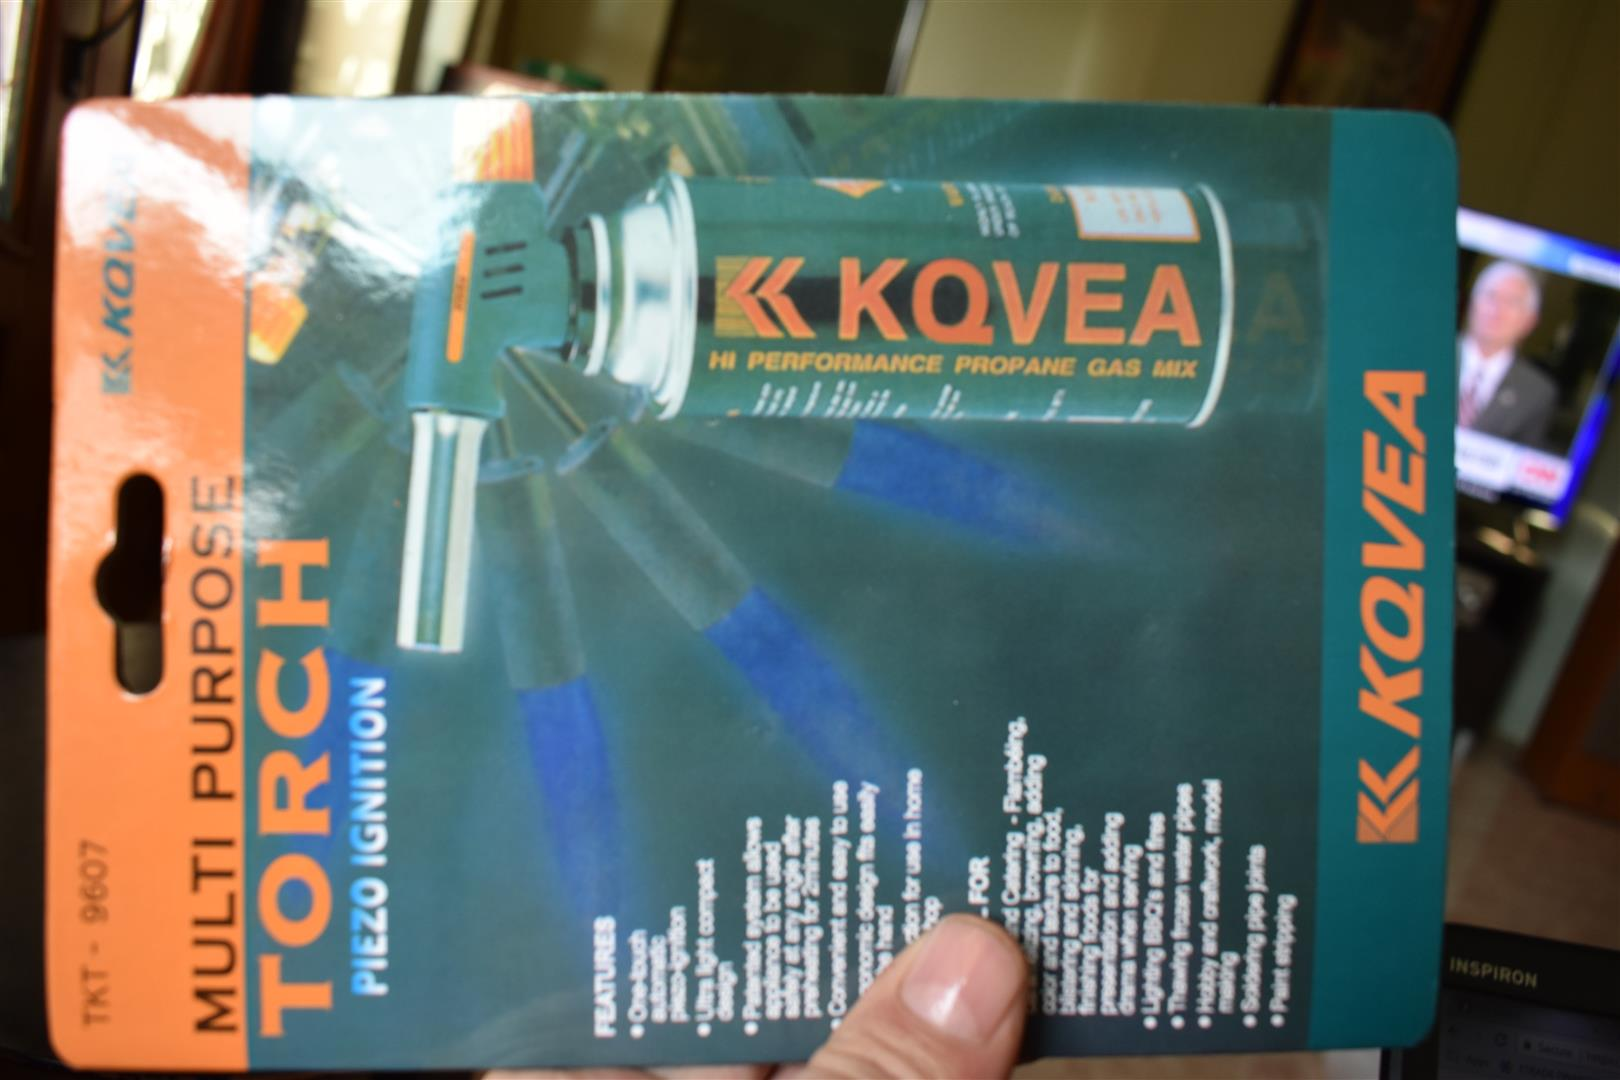 Blow torch gas - DIY housing forum - Thailand Visa Forum by